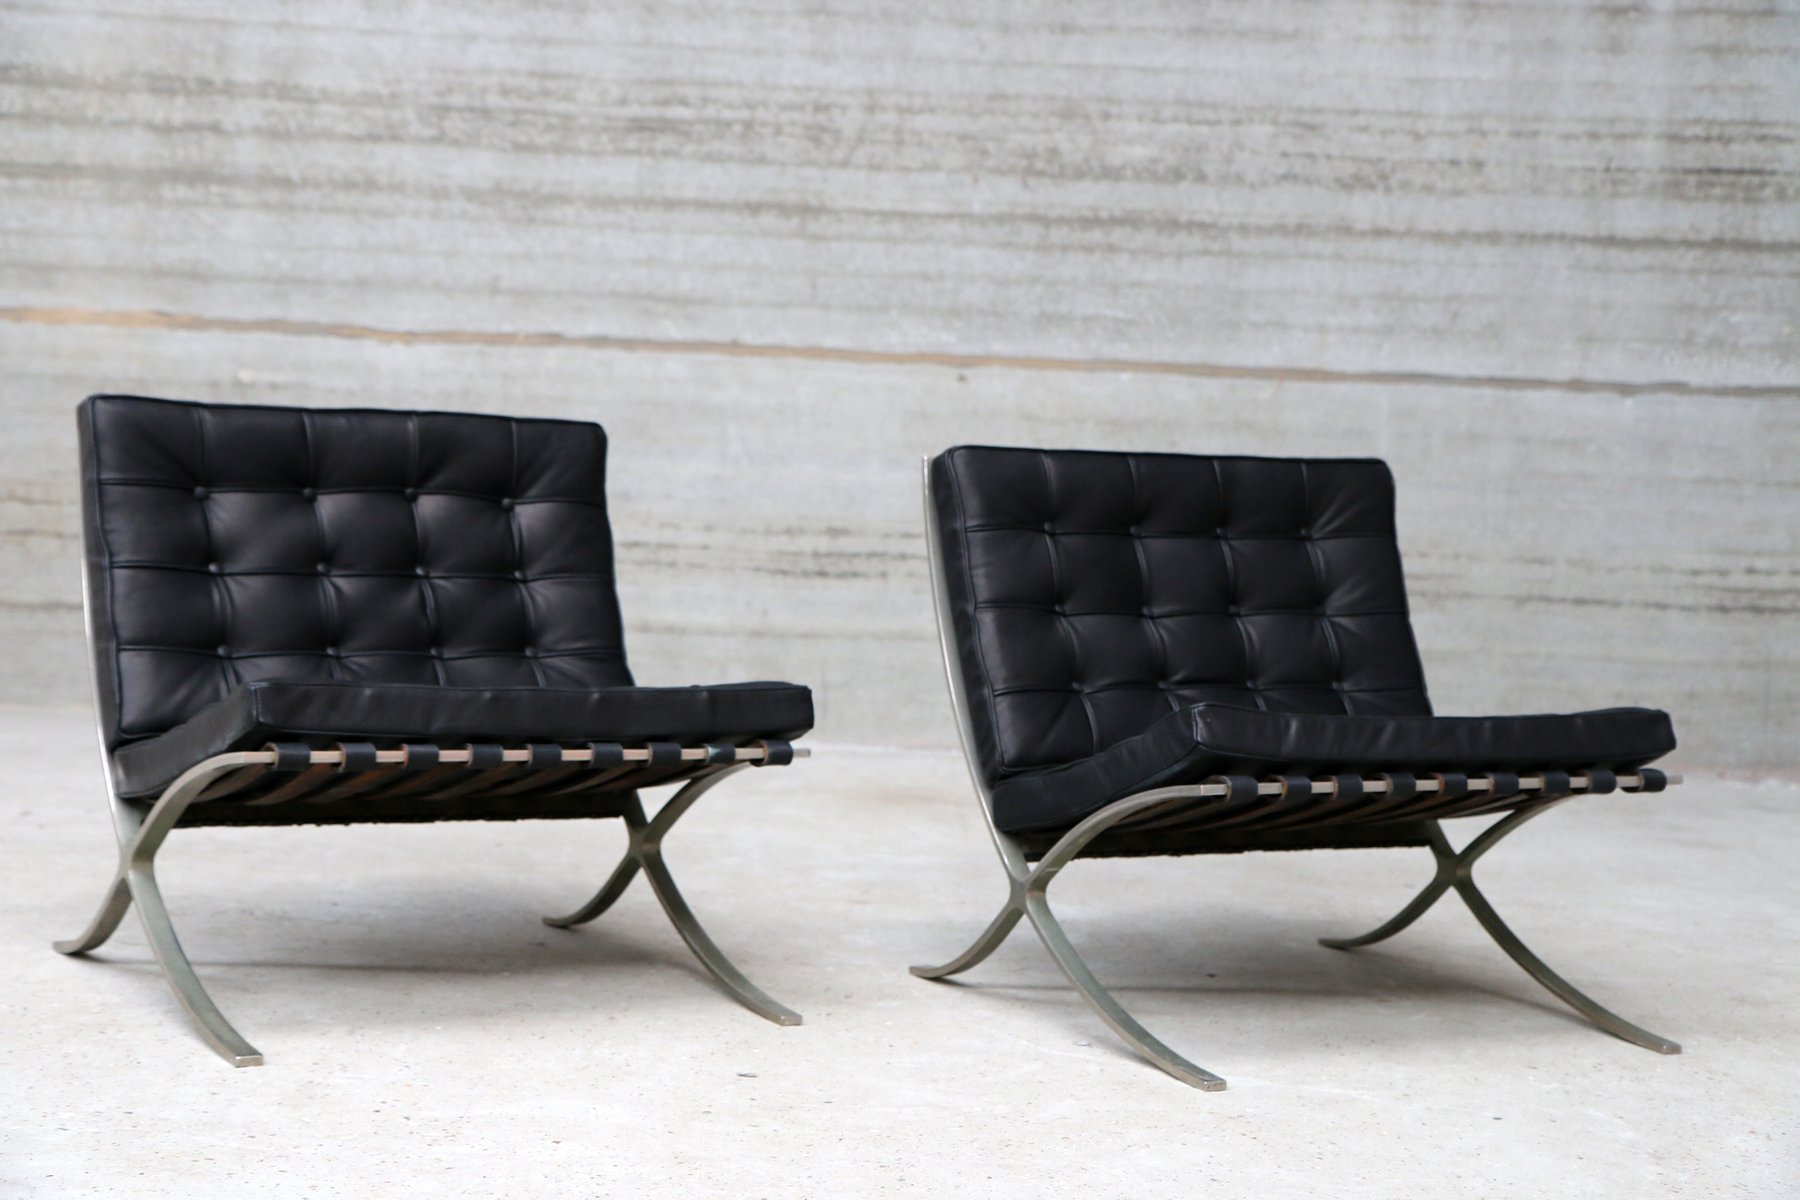 vintage barcelona chairs by ludwig mies van der rohe for knoll set of 2 for sale at pamono. Black Bedroom Furniture Sets. Home Design Ideas